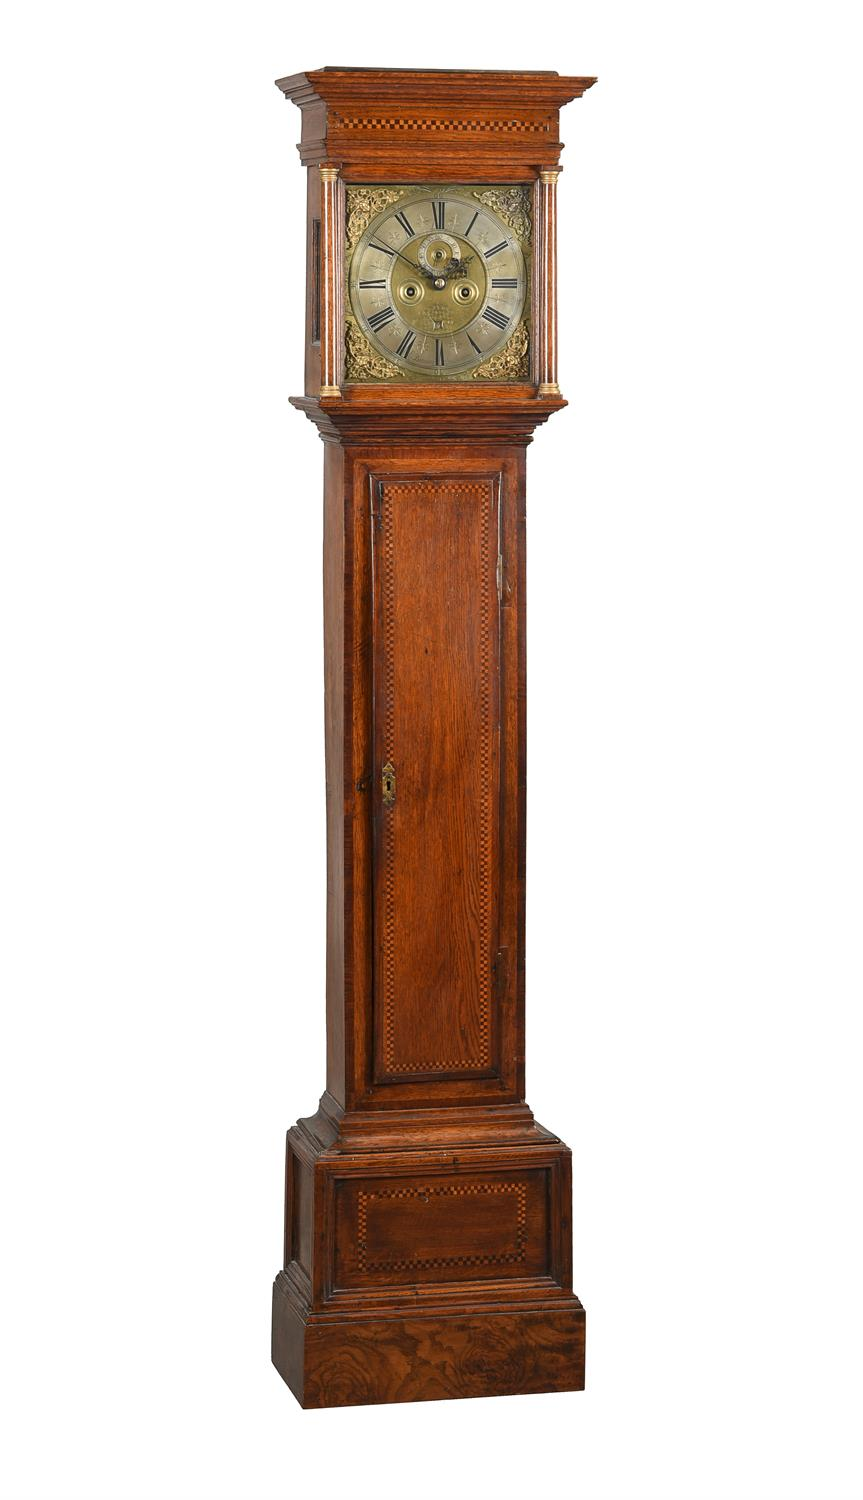 A William III provincial longcase clock movement with 11 inch dial